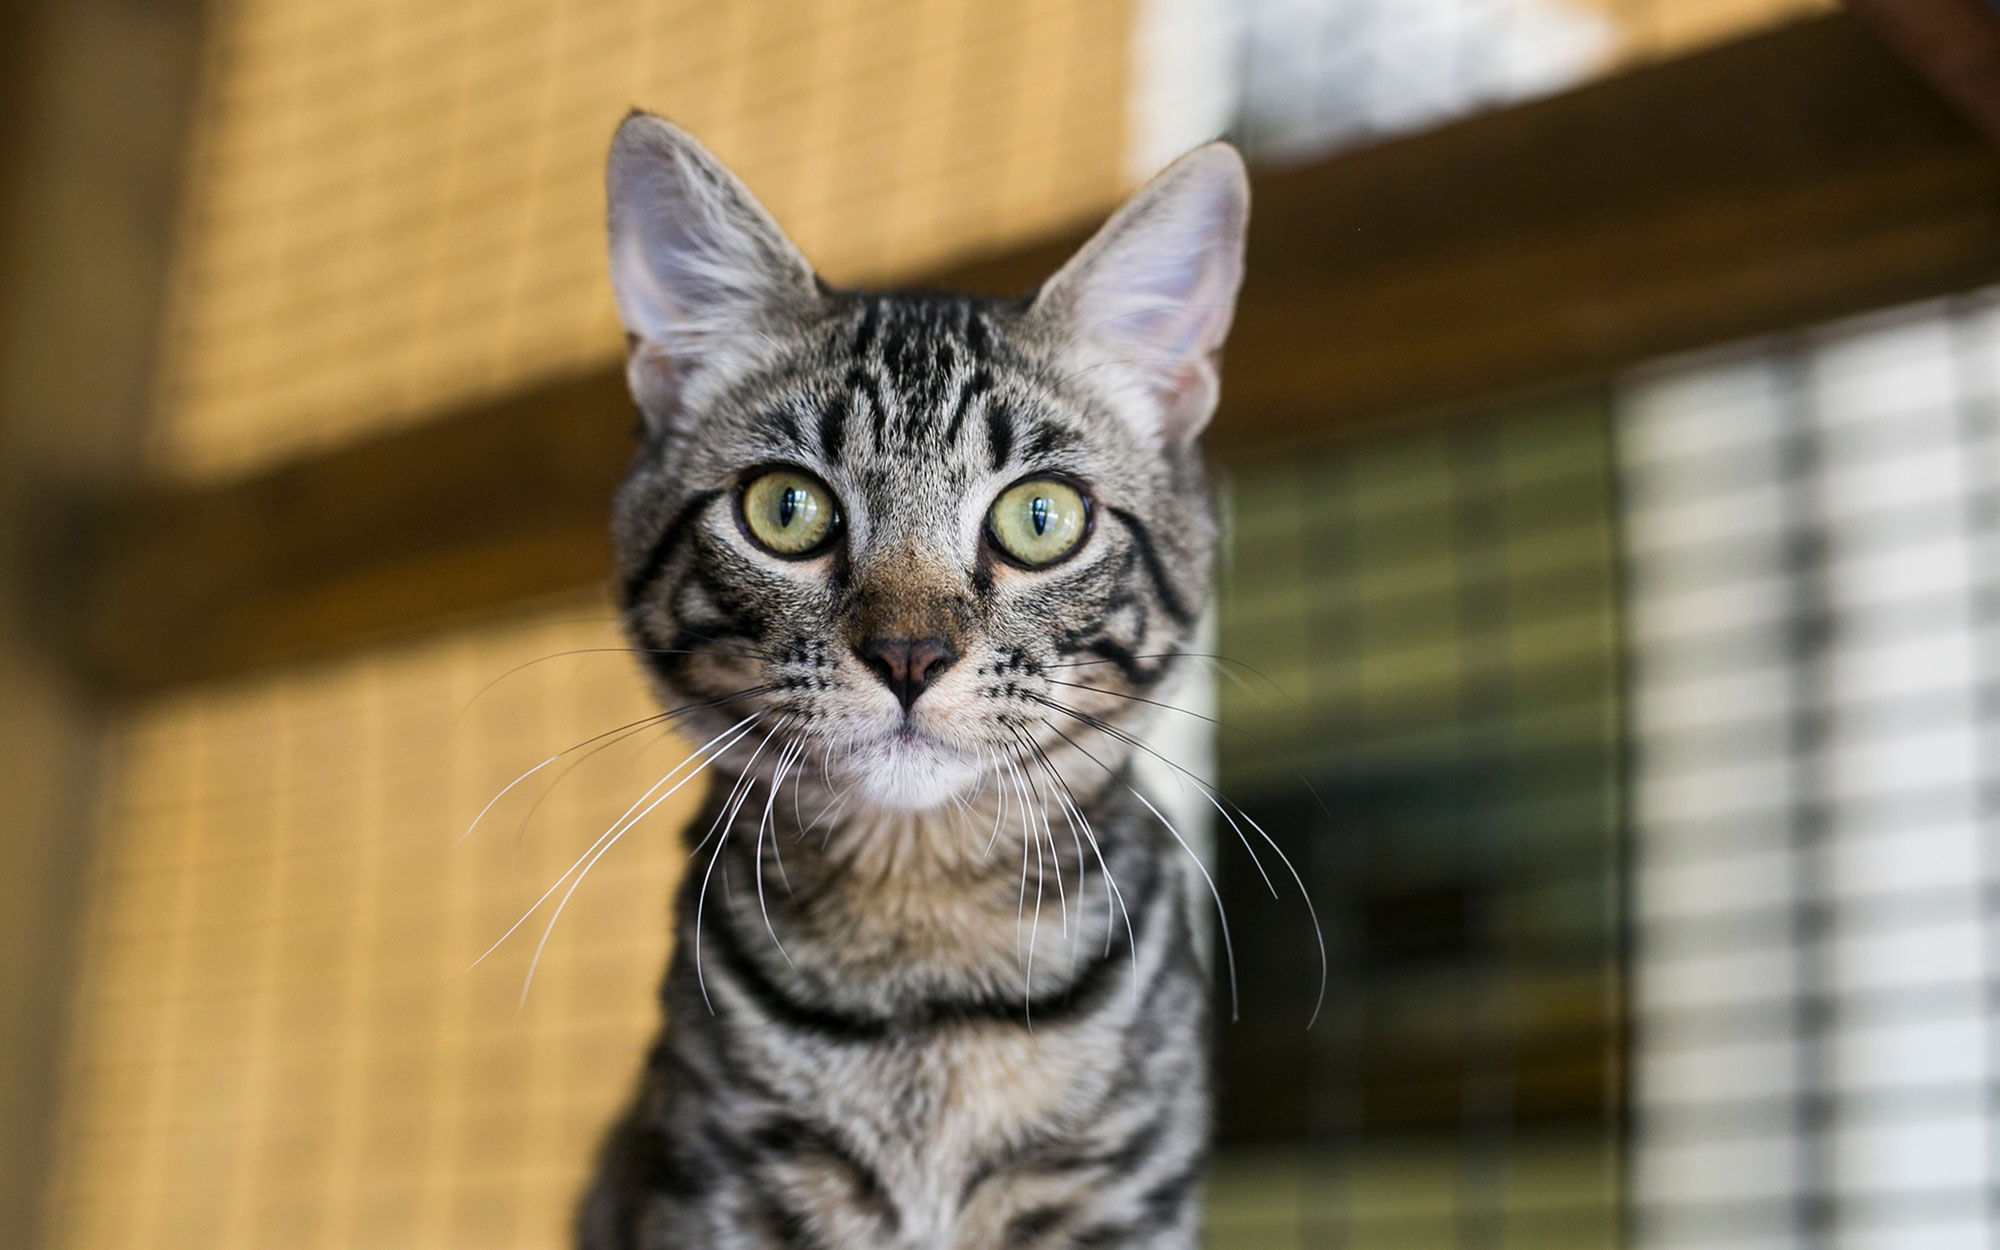 A tabby kitten looking directly at the camera